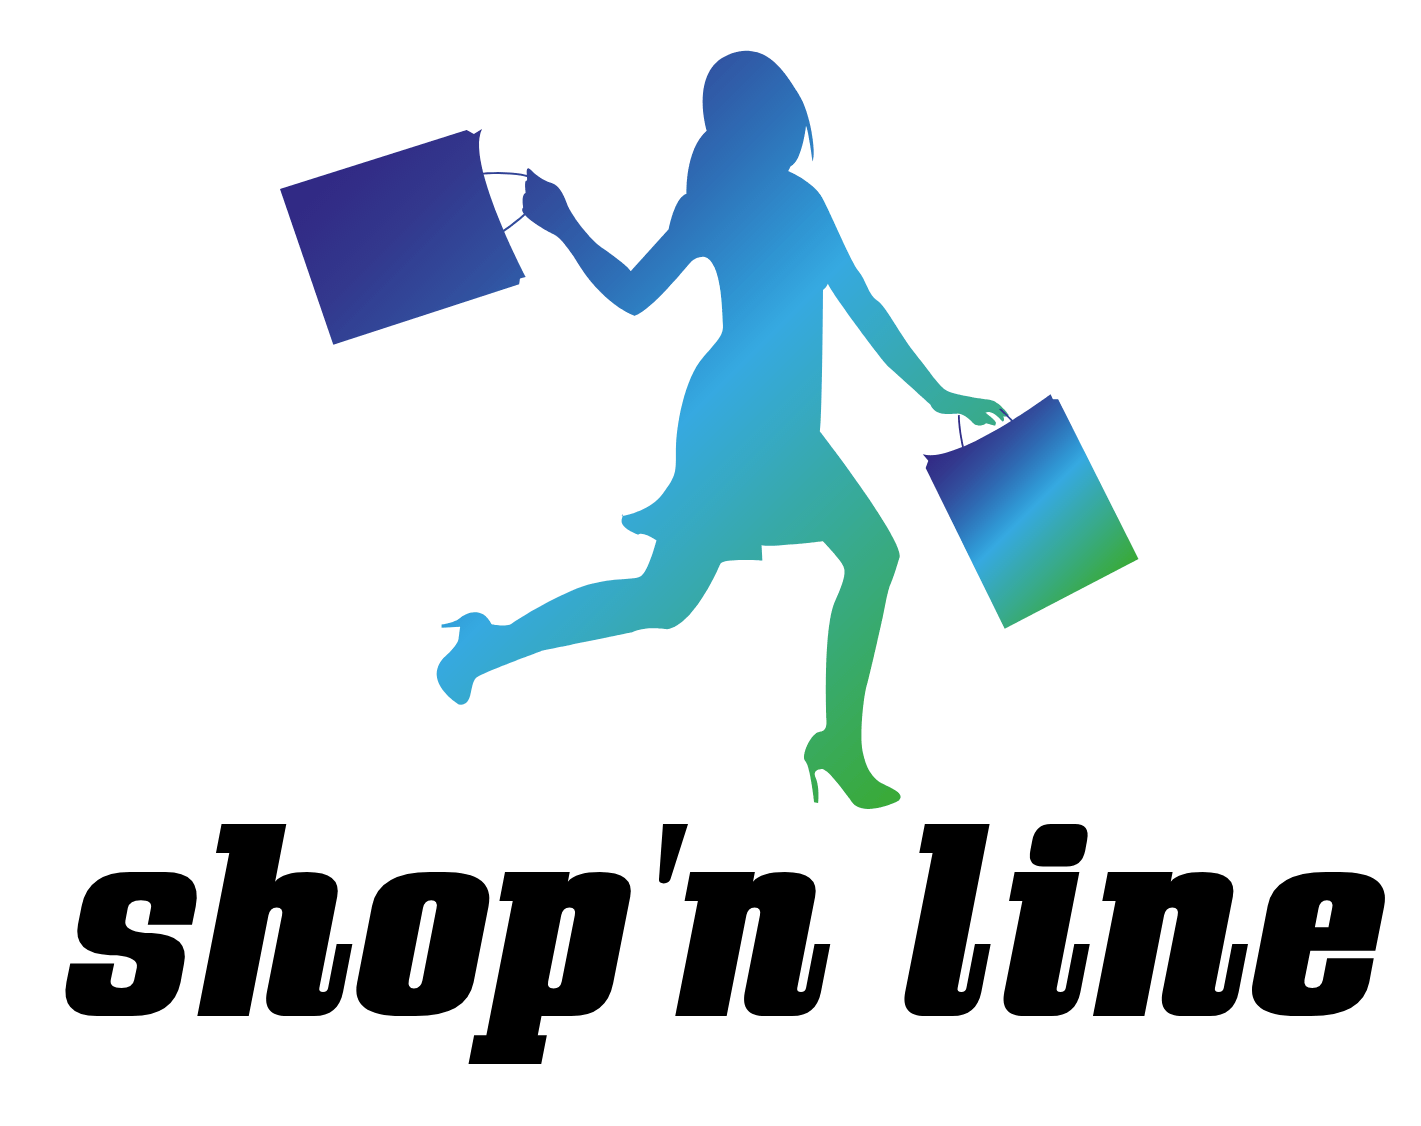 Shop'n Line Ltd., E-commerce